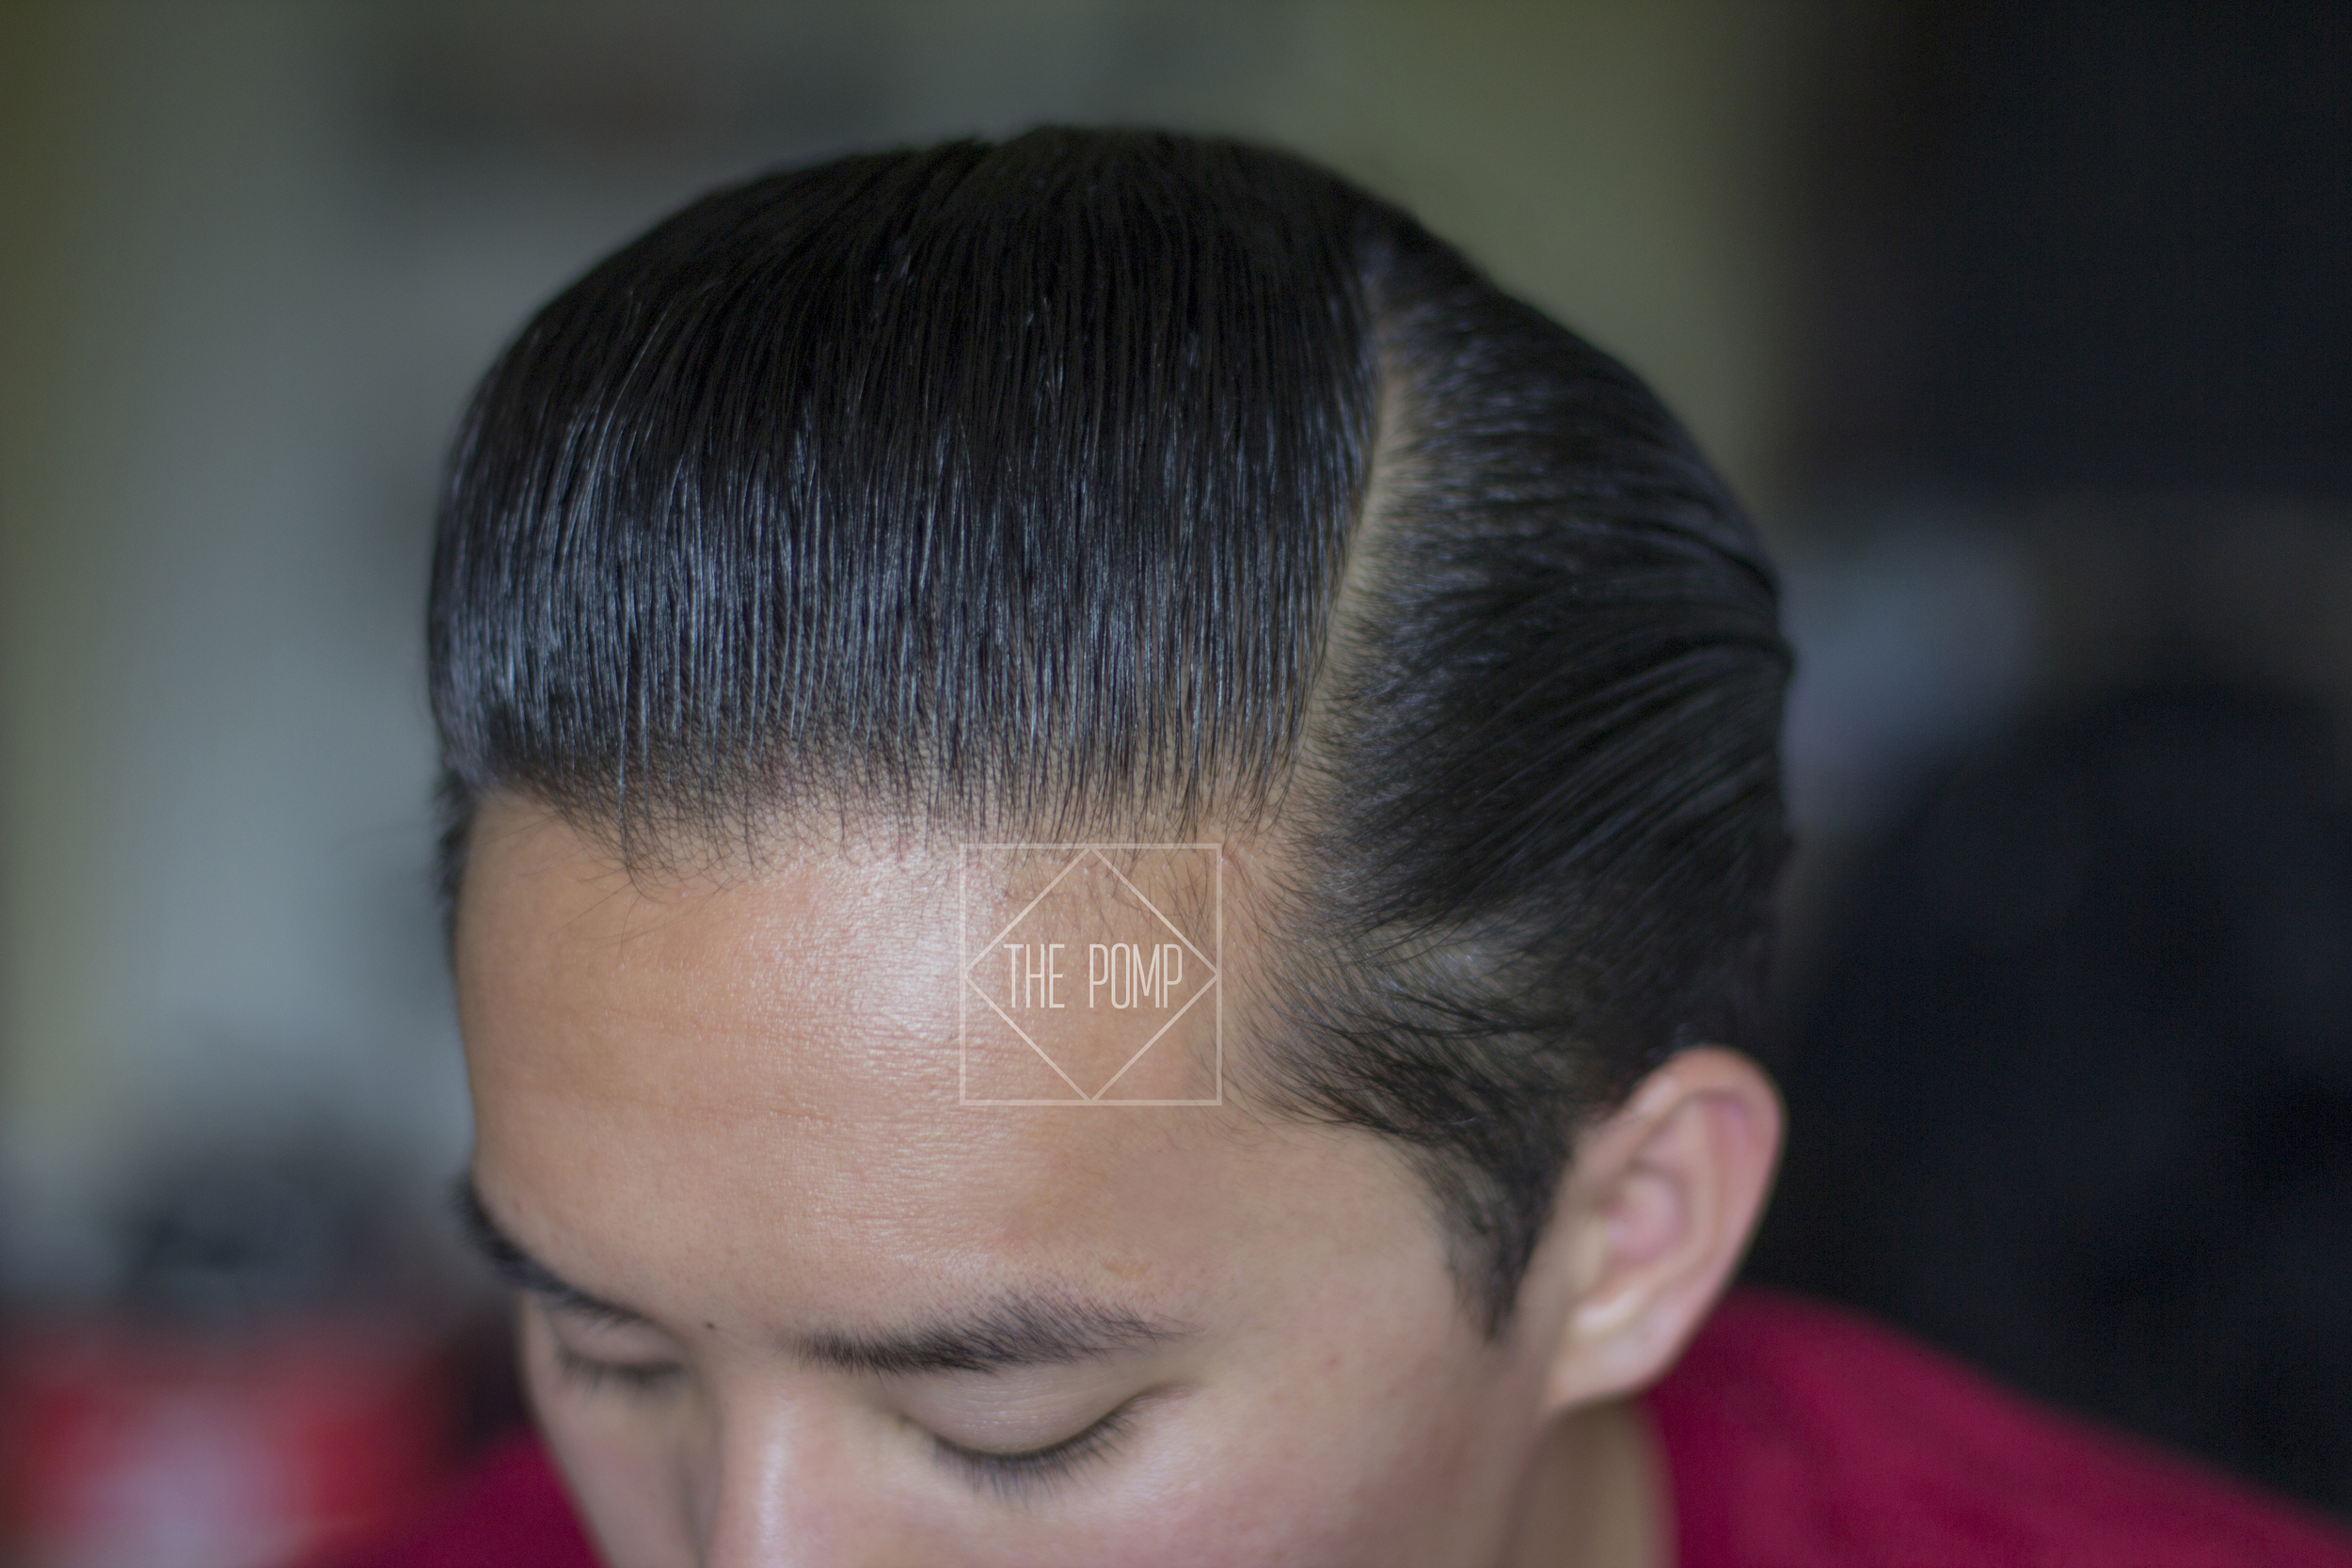 Deluxe Pomade part